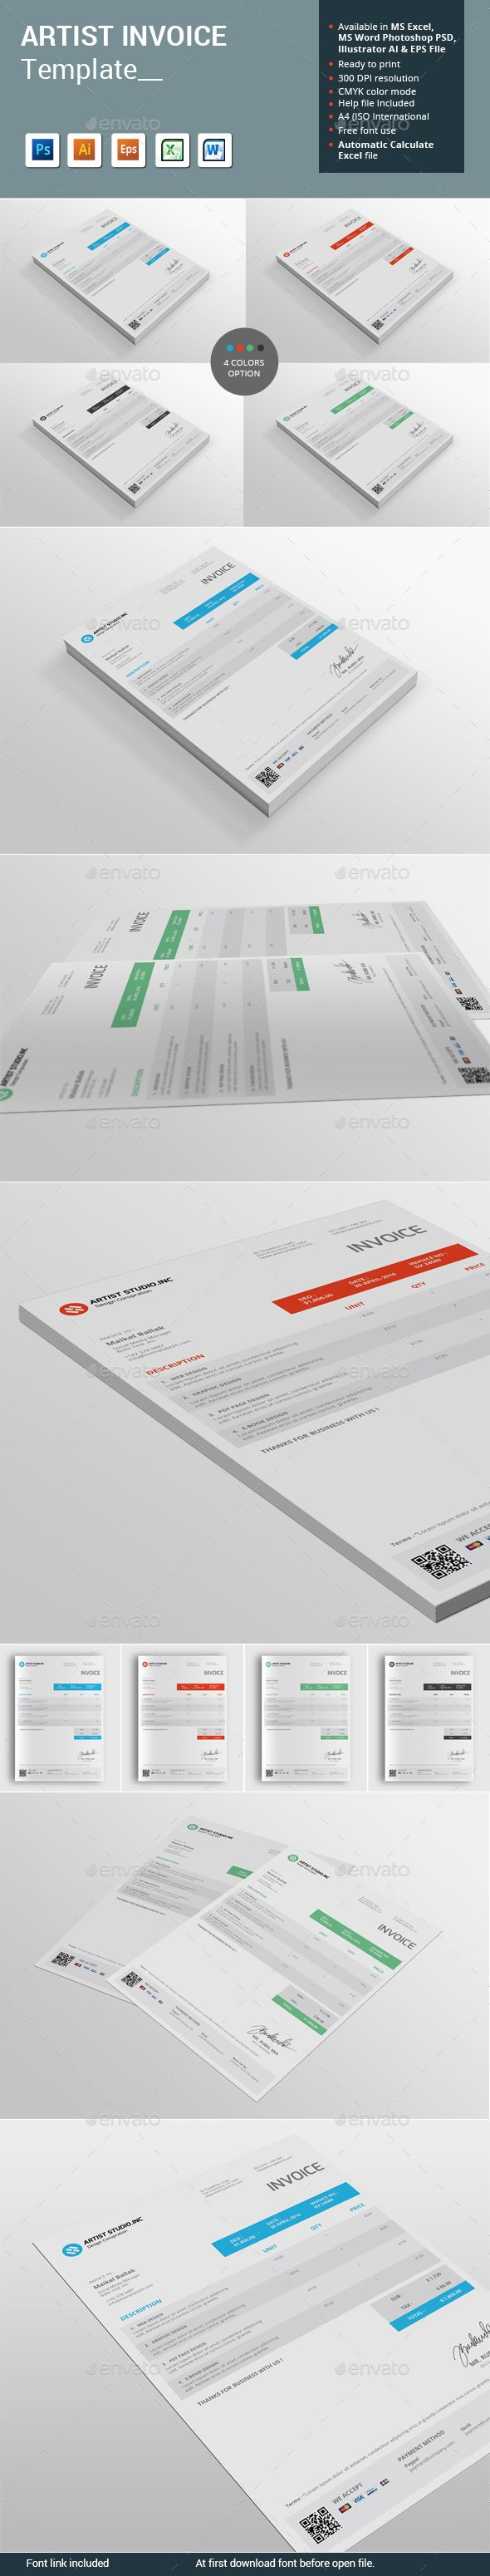 proposal template for word%0A Artist Invoice Template